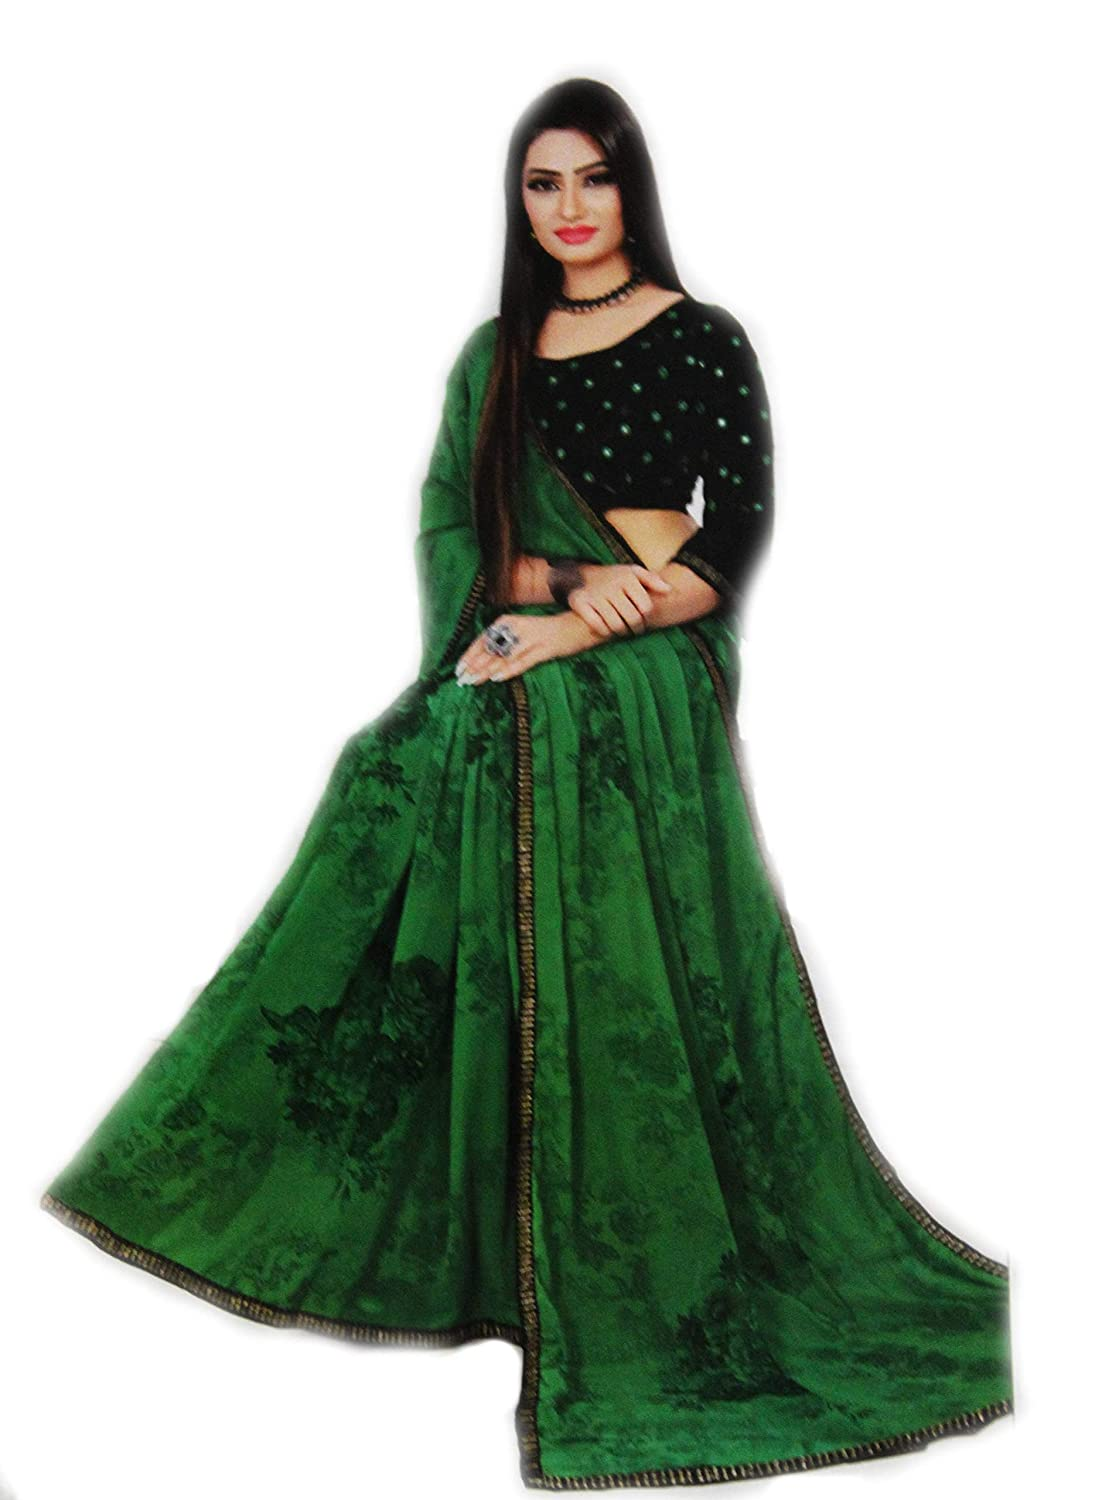 Buy Prameram Collections Women S Soft Silk Saree With Floral Print And Mirror Work Blouse Pc1 Slkflr Sr01 Green At Amazon In,Attractive Simple Butterfly Corner Border Designs For Projects